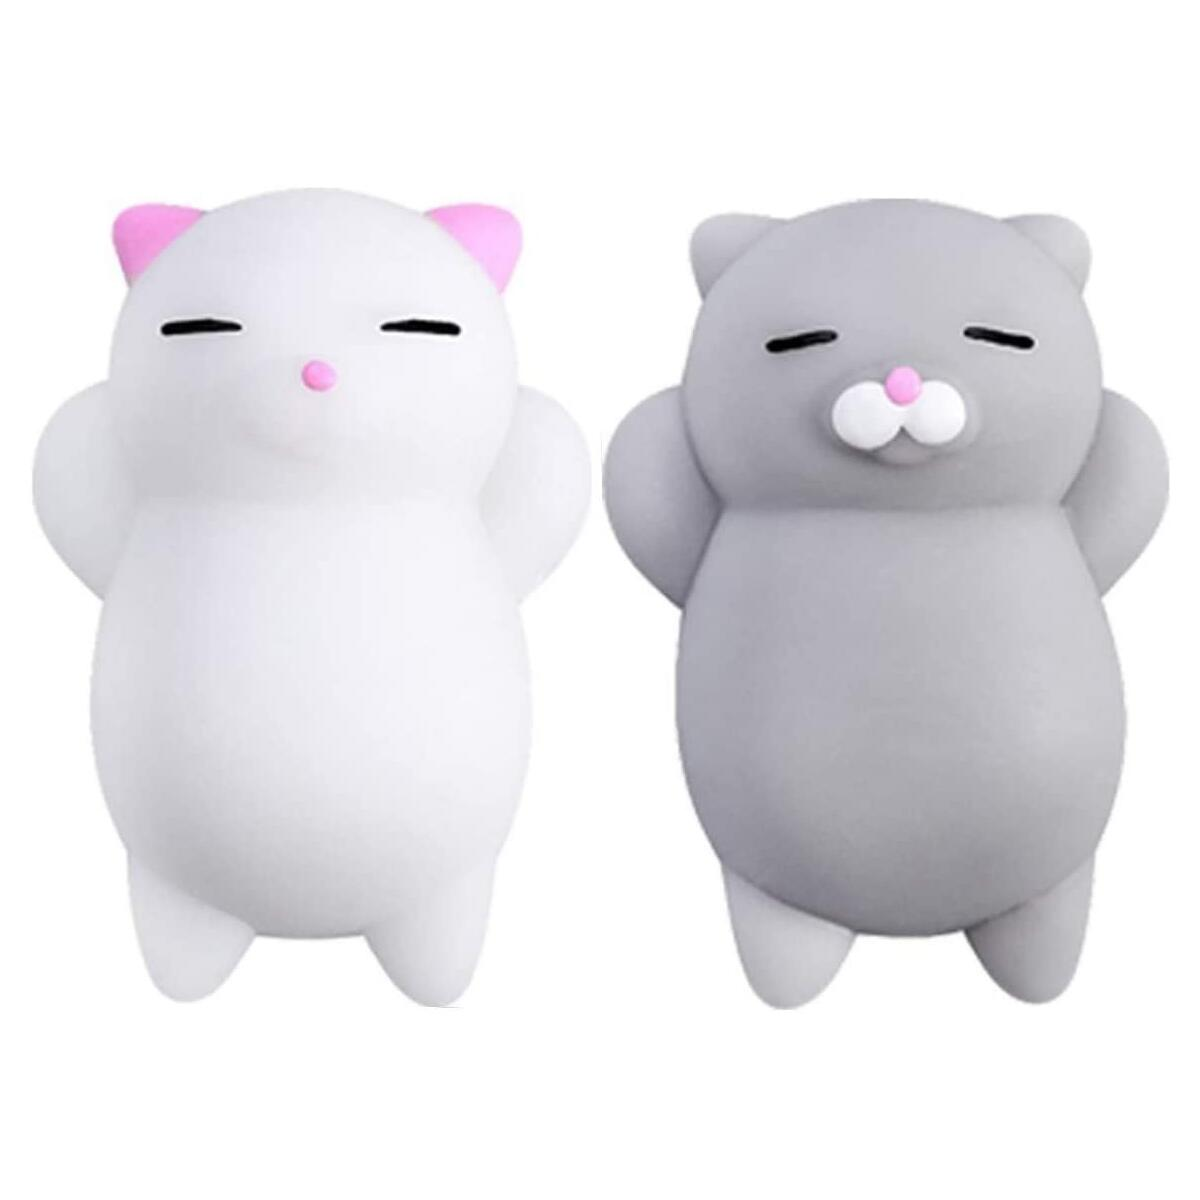 Squishy Cat Set - 2 Soft Silicone Kawaii Kitties, Unique Easter Gift Idea for Kids & Adults, Best Teen Girls, Boys & Tweens Birthday Present & Top Stress Relief Fidget 2020